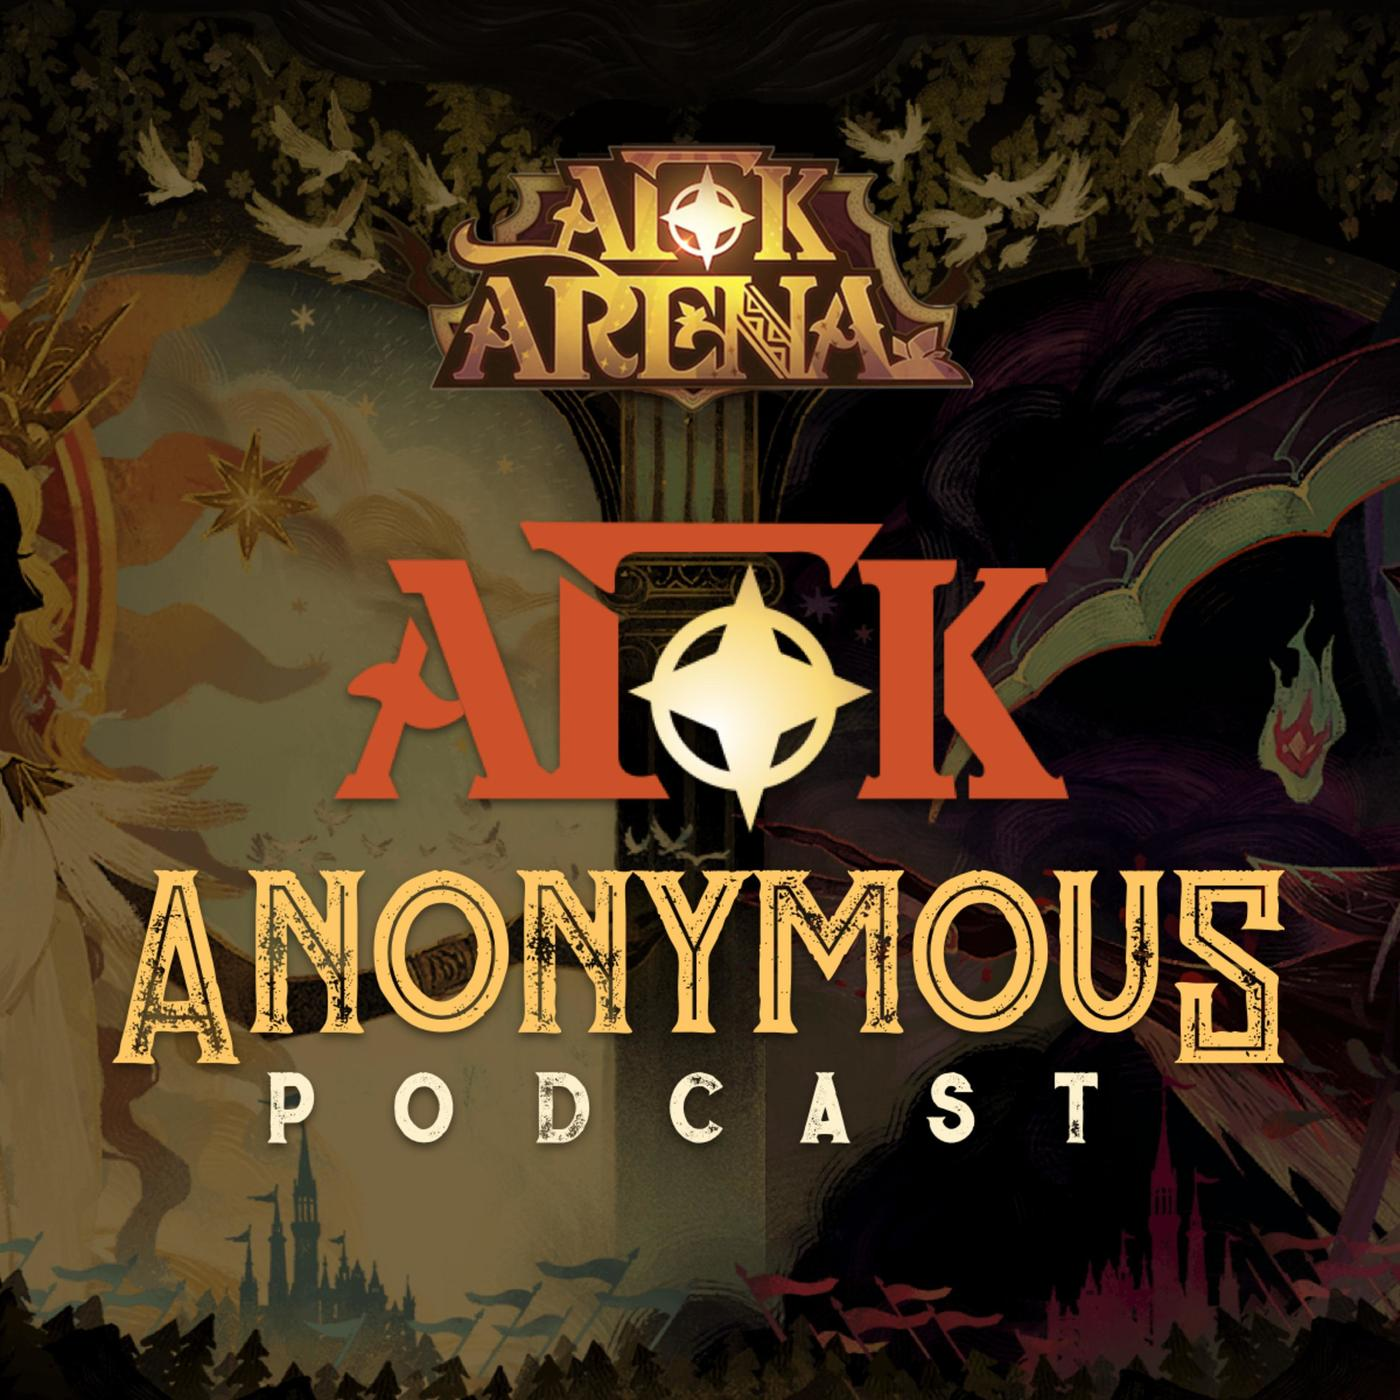 AFK Anonymous: AFK Arena Podcast - AlterNerdReality | Listen